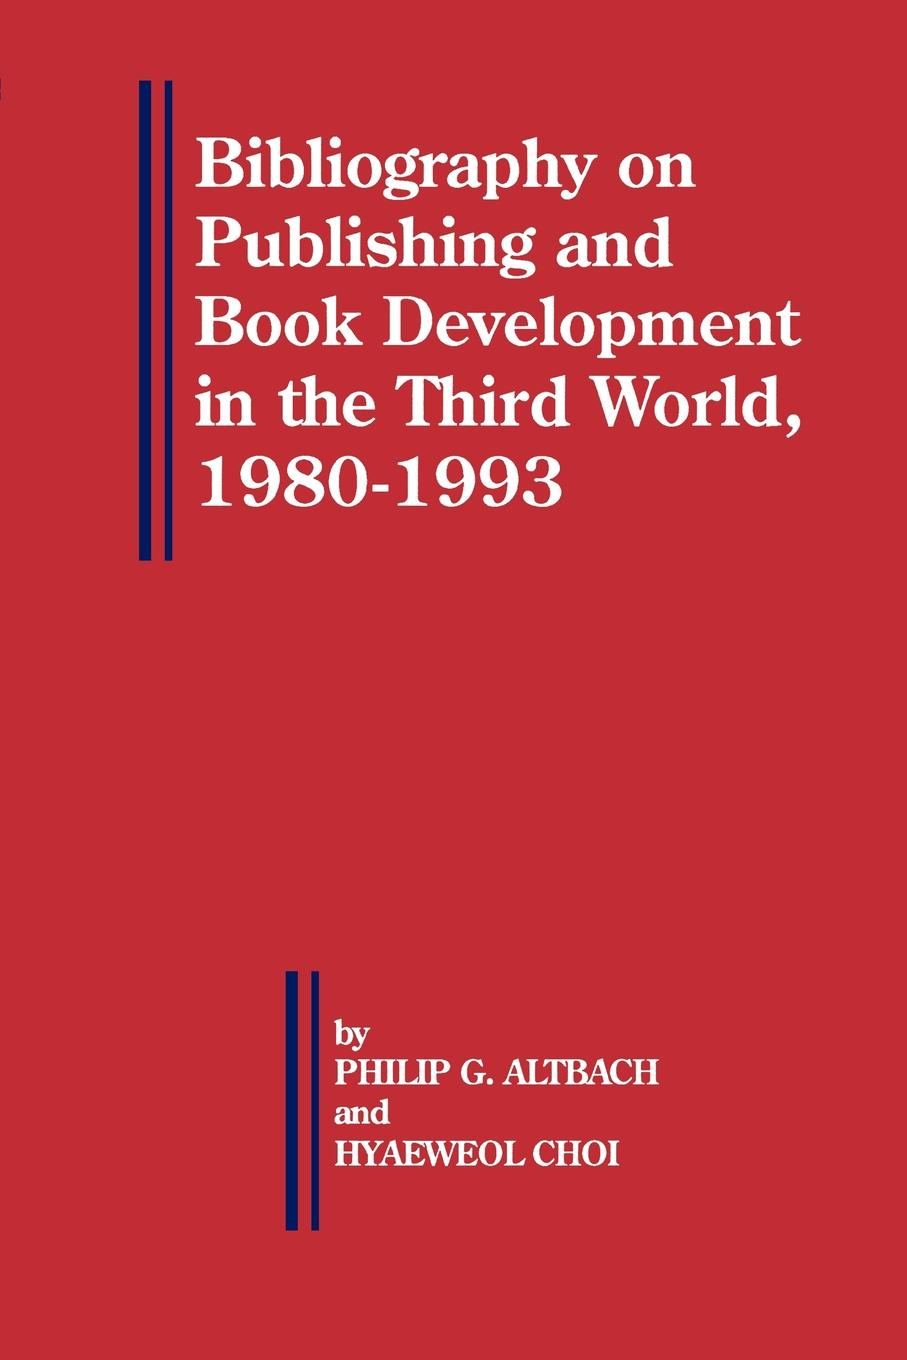 Hyaeweol Choi, Philip G. Altbach Bibliography on Publishing and Book Development in the Third World, 1980-1993